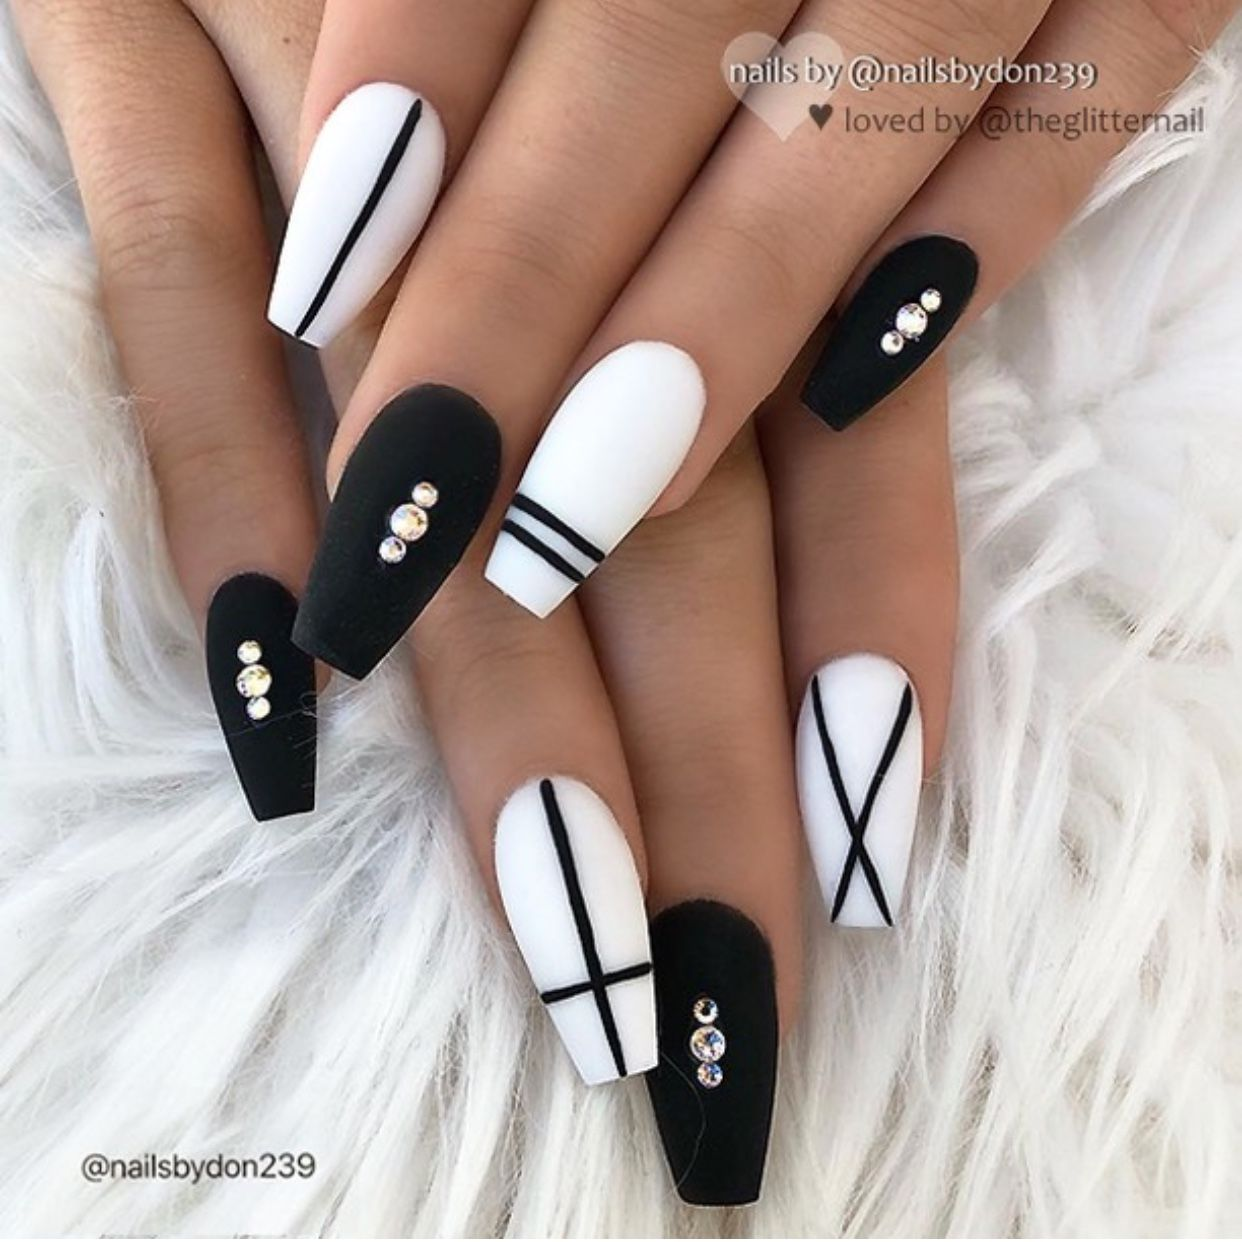 Pin By Daniela Hiches On Black Nails Simple Acrylic Nails Chic Nails Matted Nails